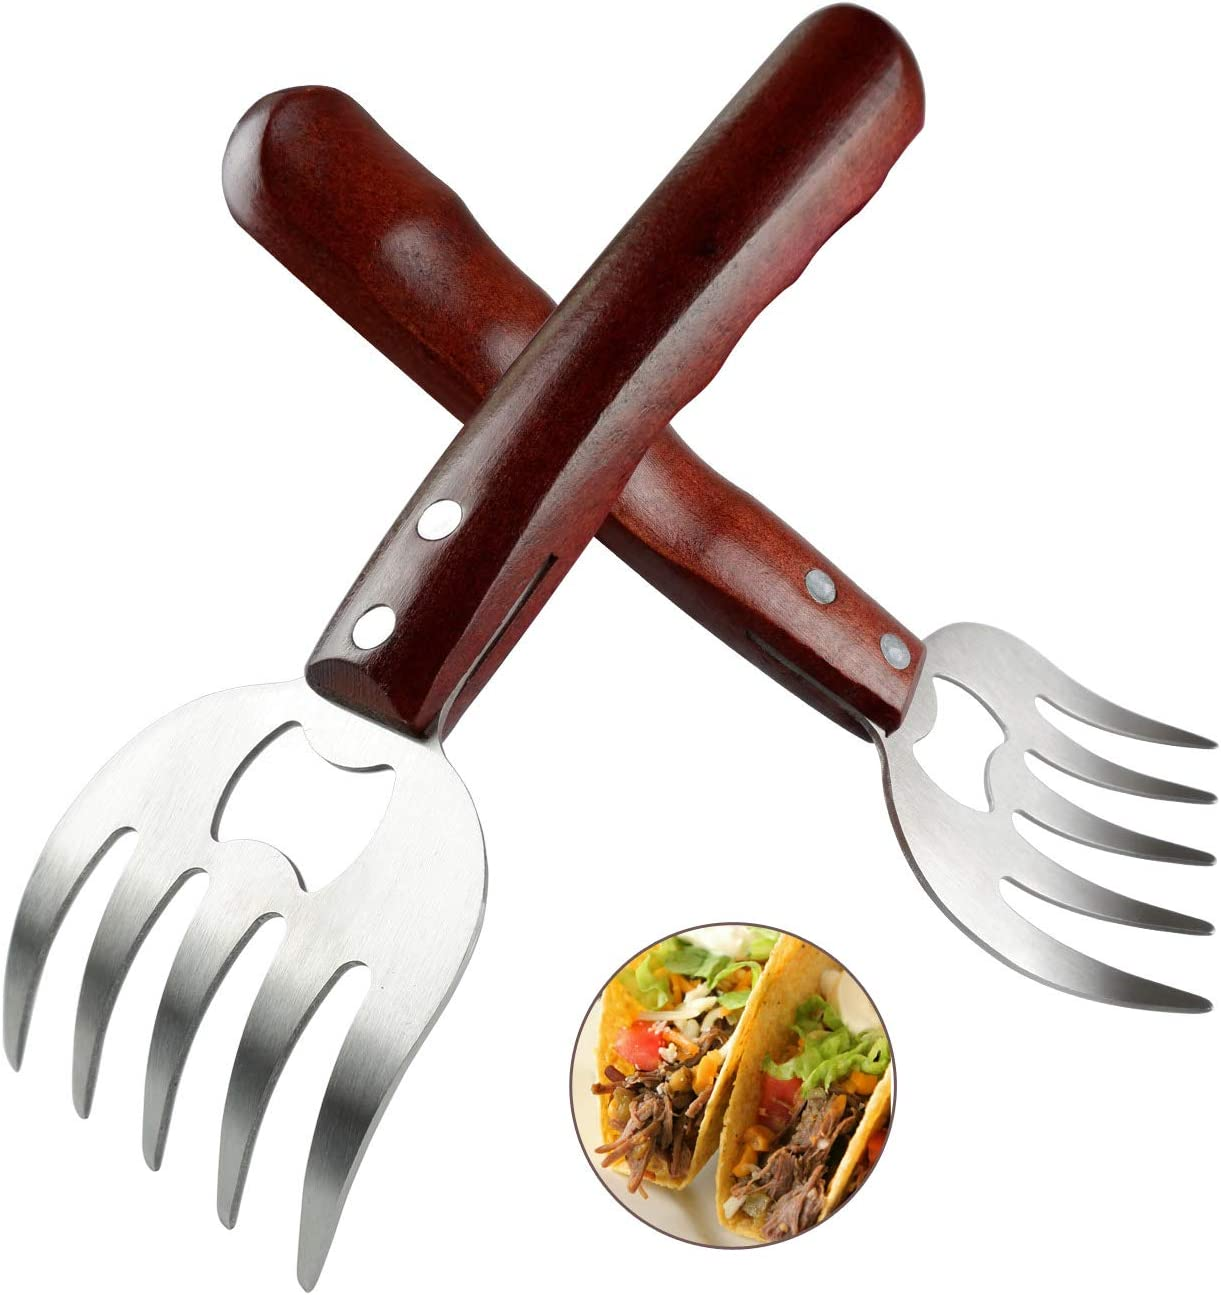 AIYUE Meat Shredding Claws Stainless Steel Pulled Pork Shredder Meat Claws for BBQ Shredding Pulling Handing Lifting & Serving Pork Turkey Chicken with Long Wood Handle (2 PCS,BPA Free)